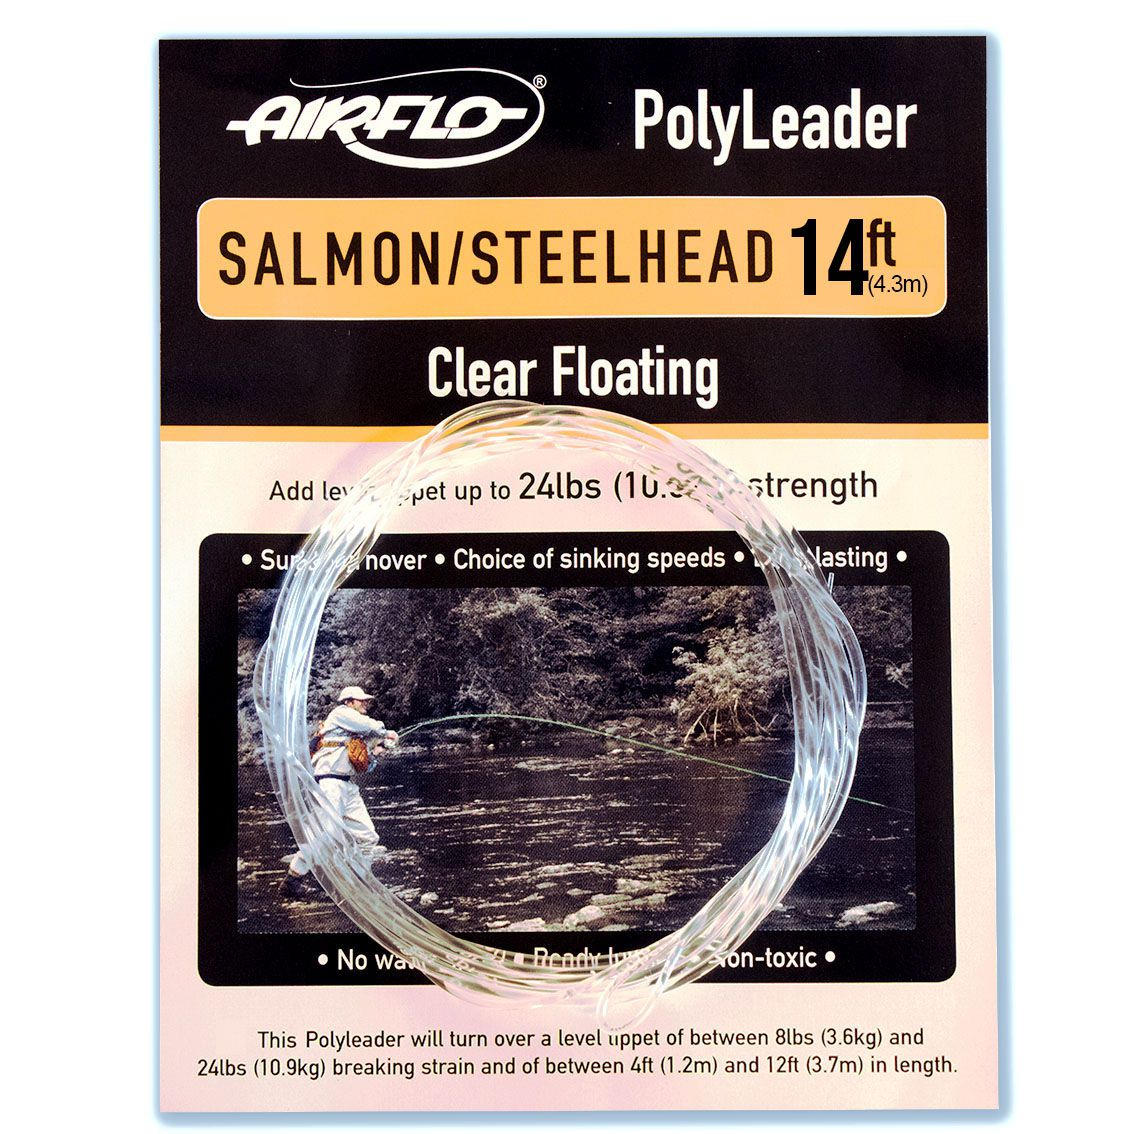 Polyleader Airflo Salmon Steelhead 14' (Floating)